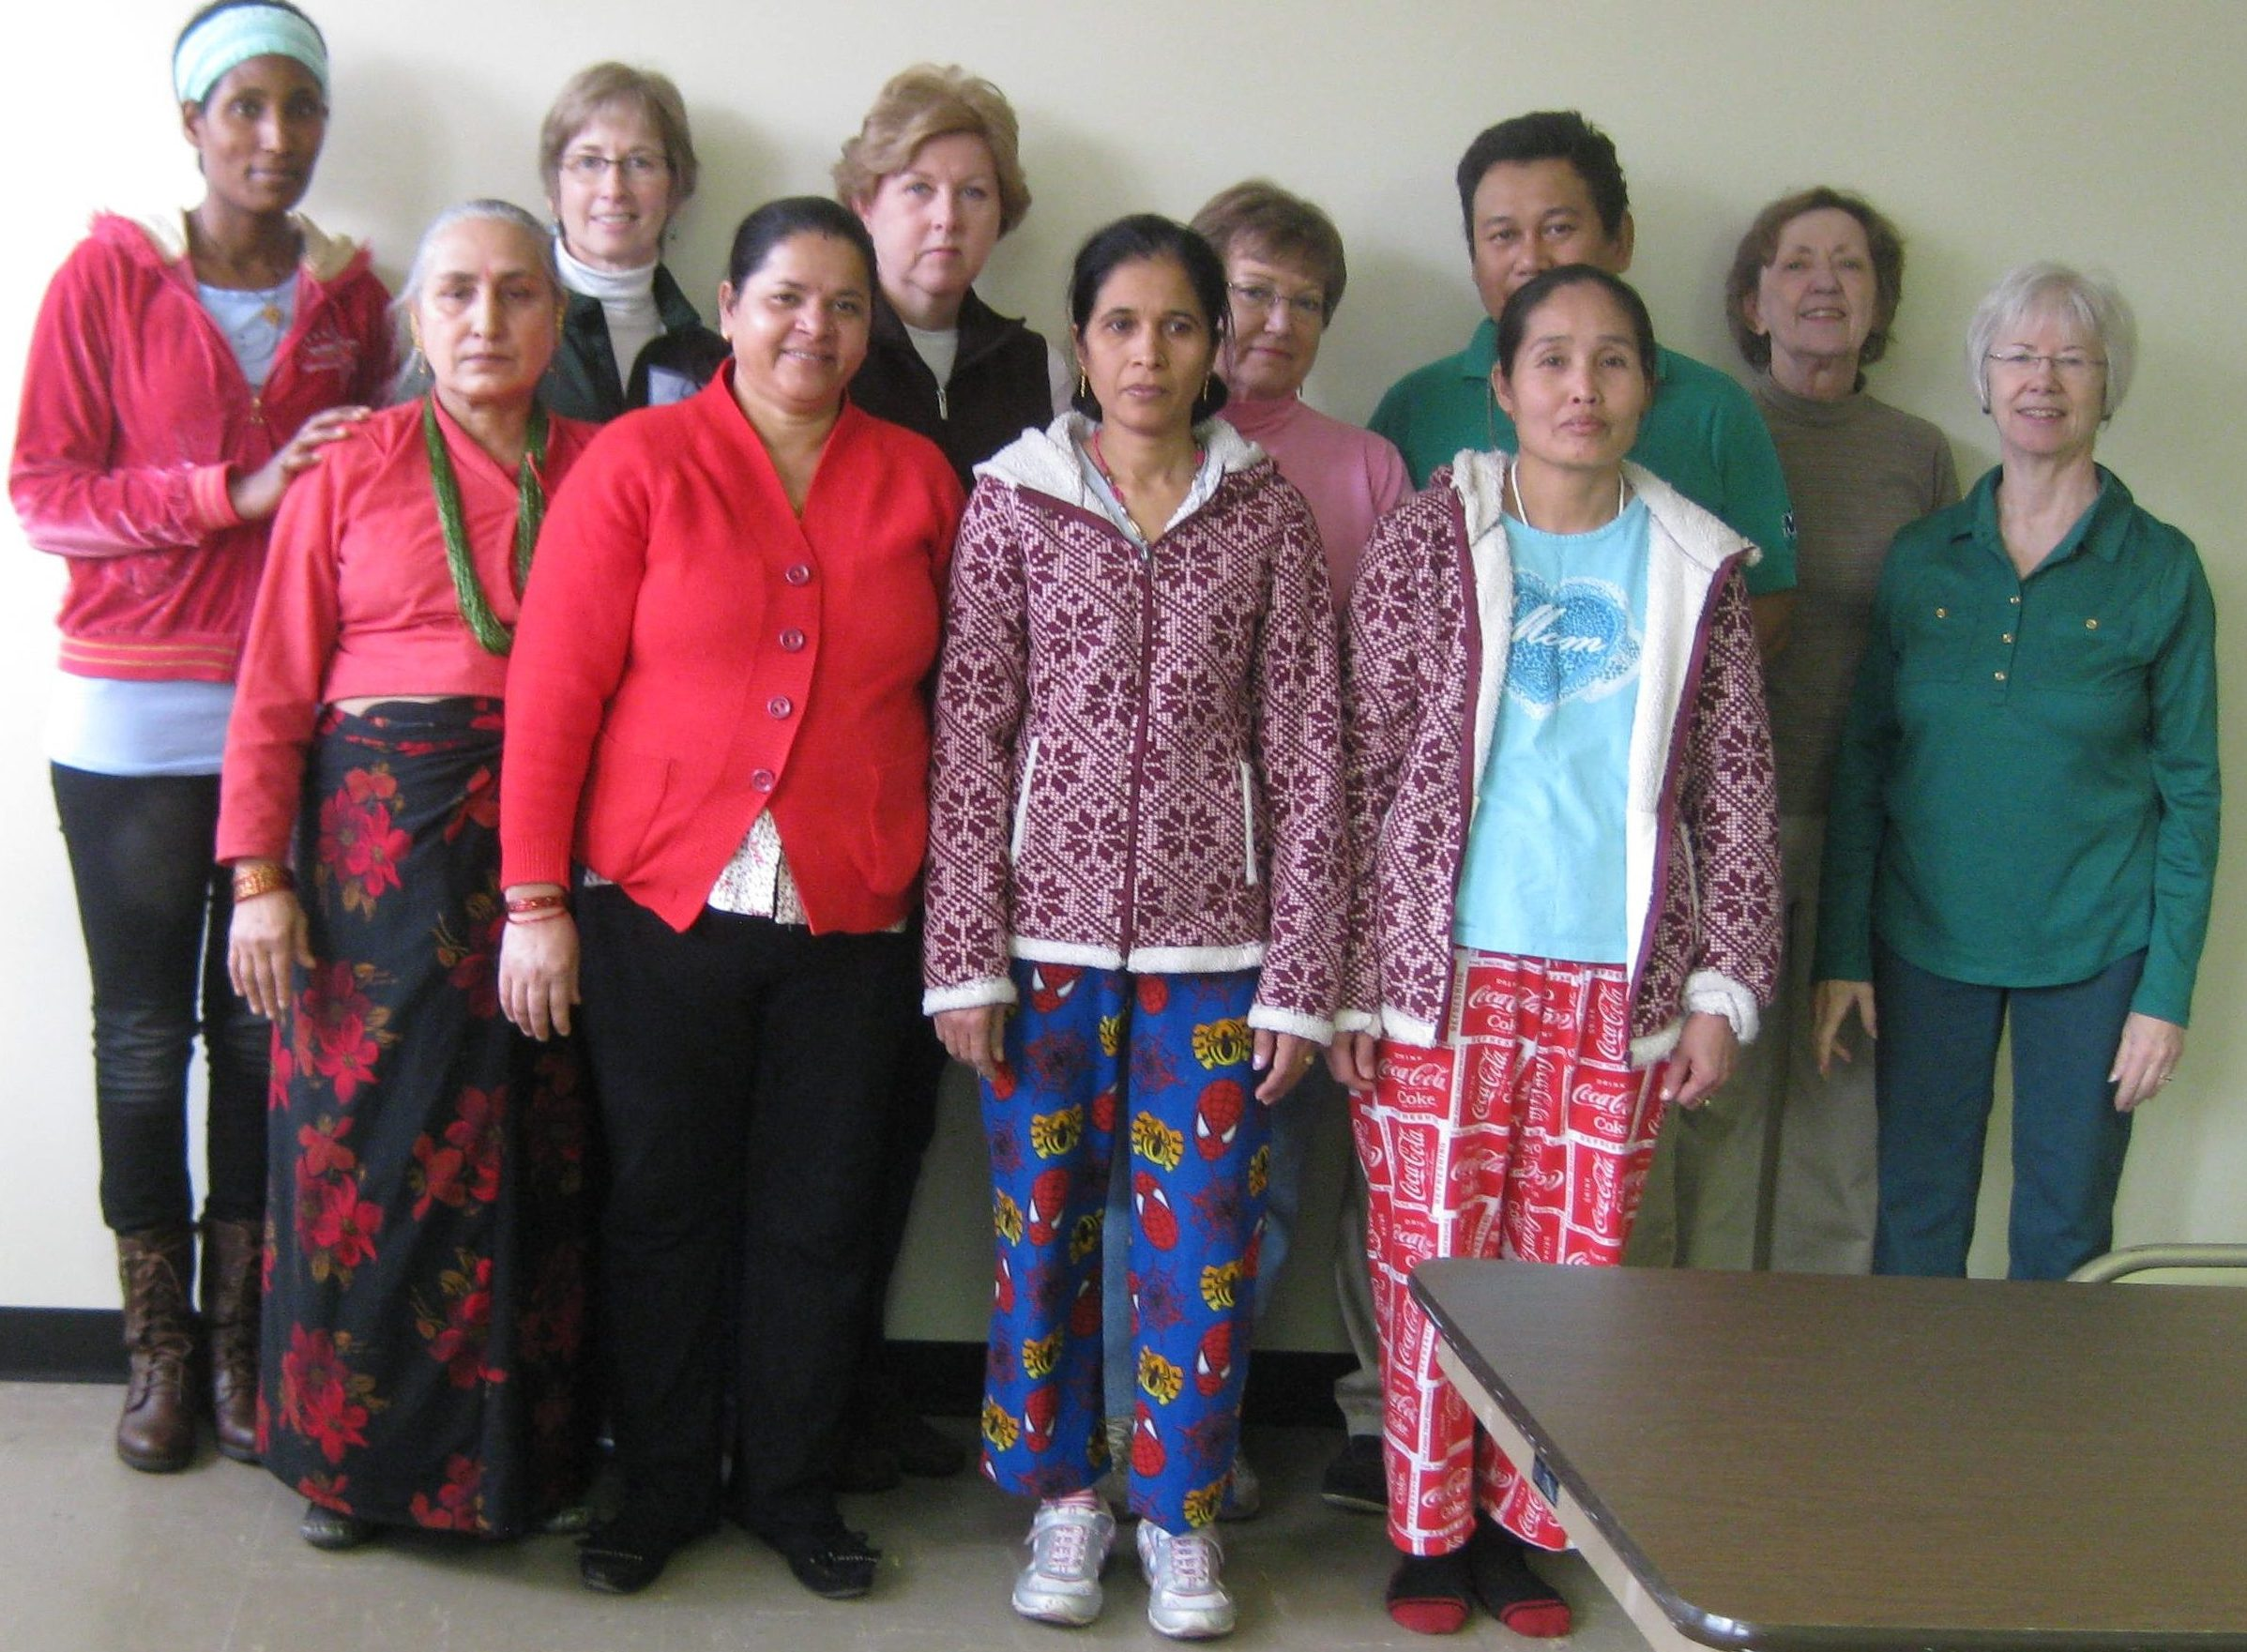 Sewing class - students and volunteers